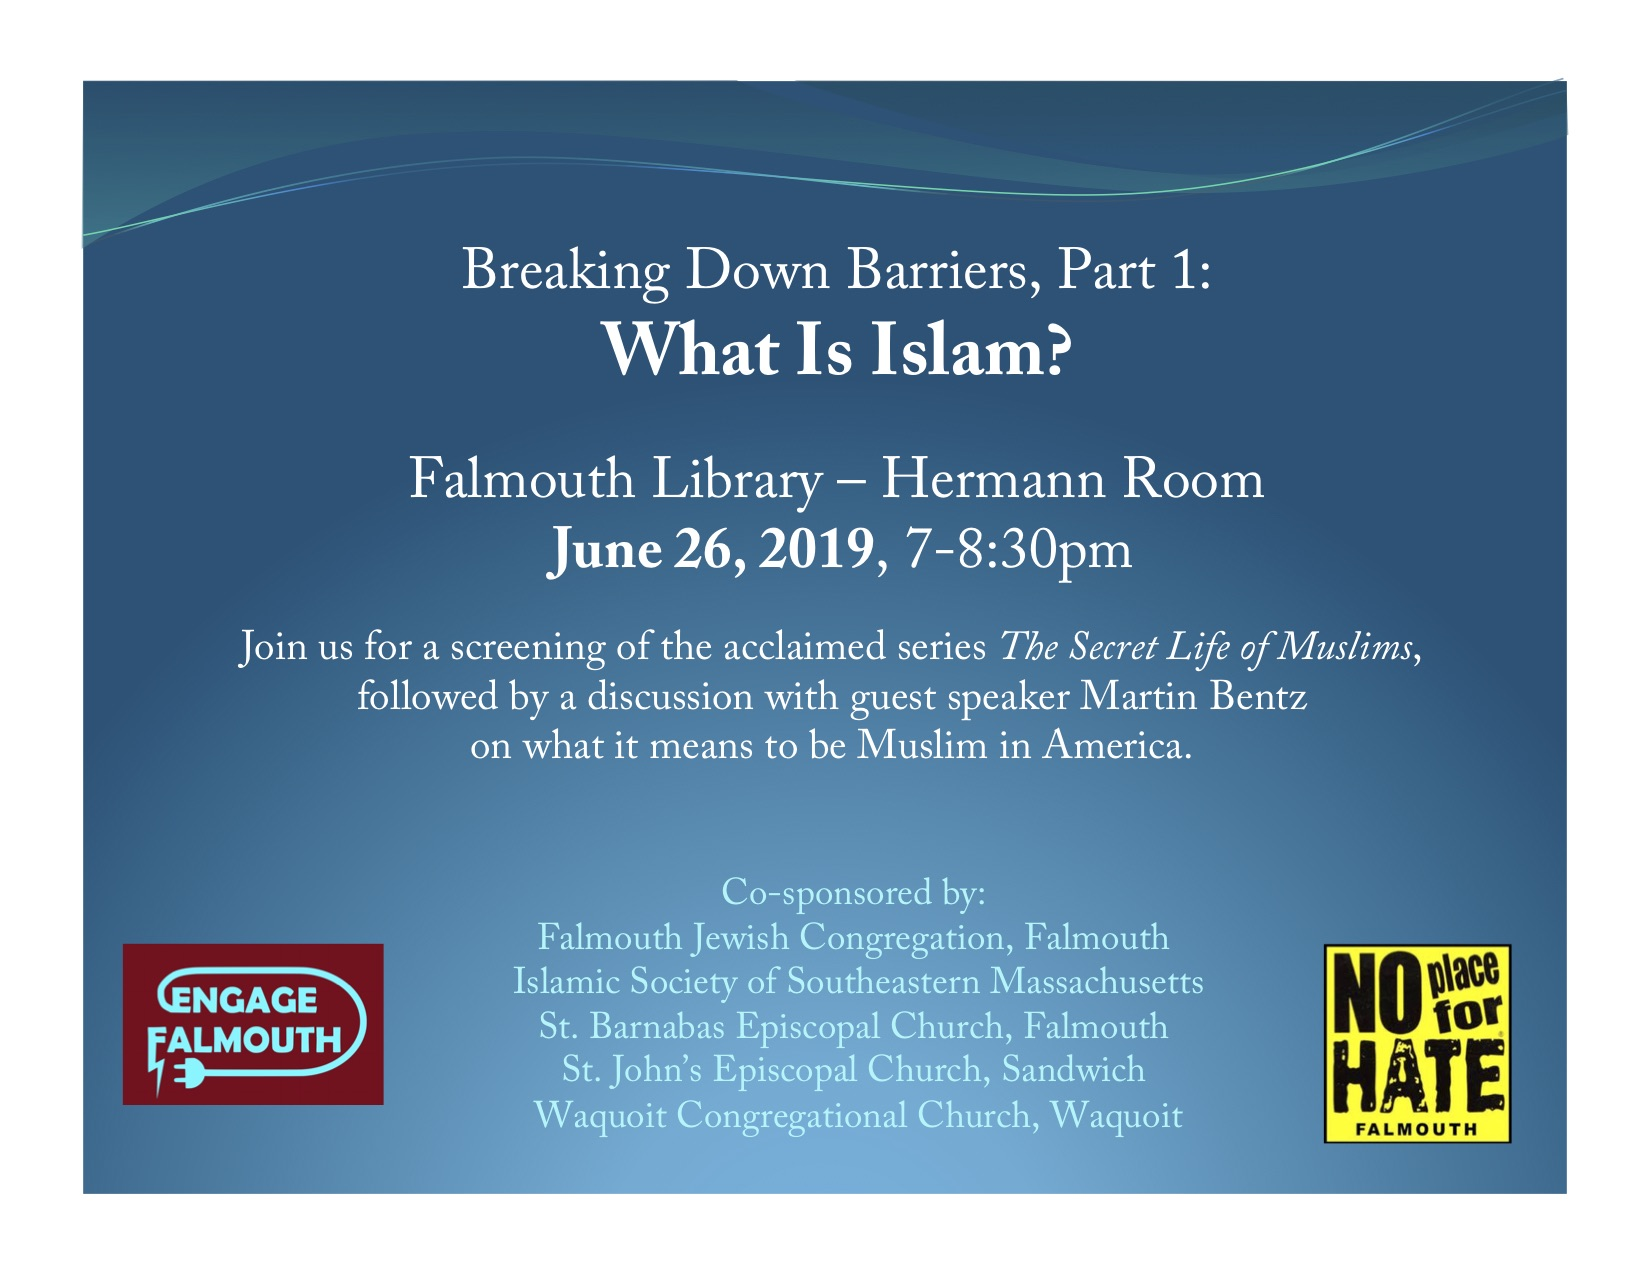 Breaking Down Barriers, Part 1: What Is Islam? — Engage Falmouth